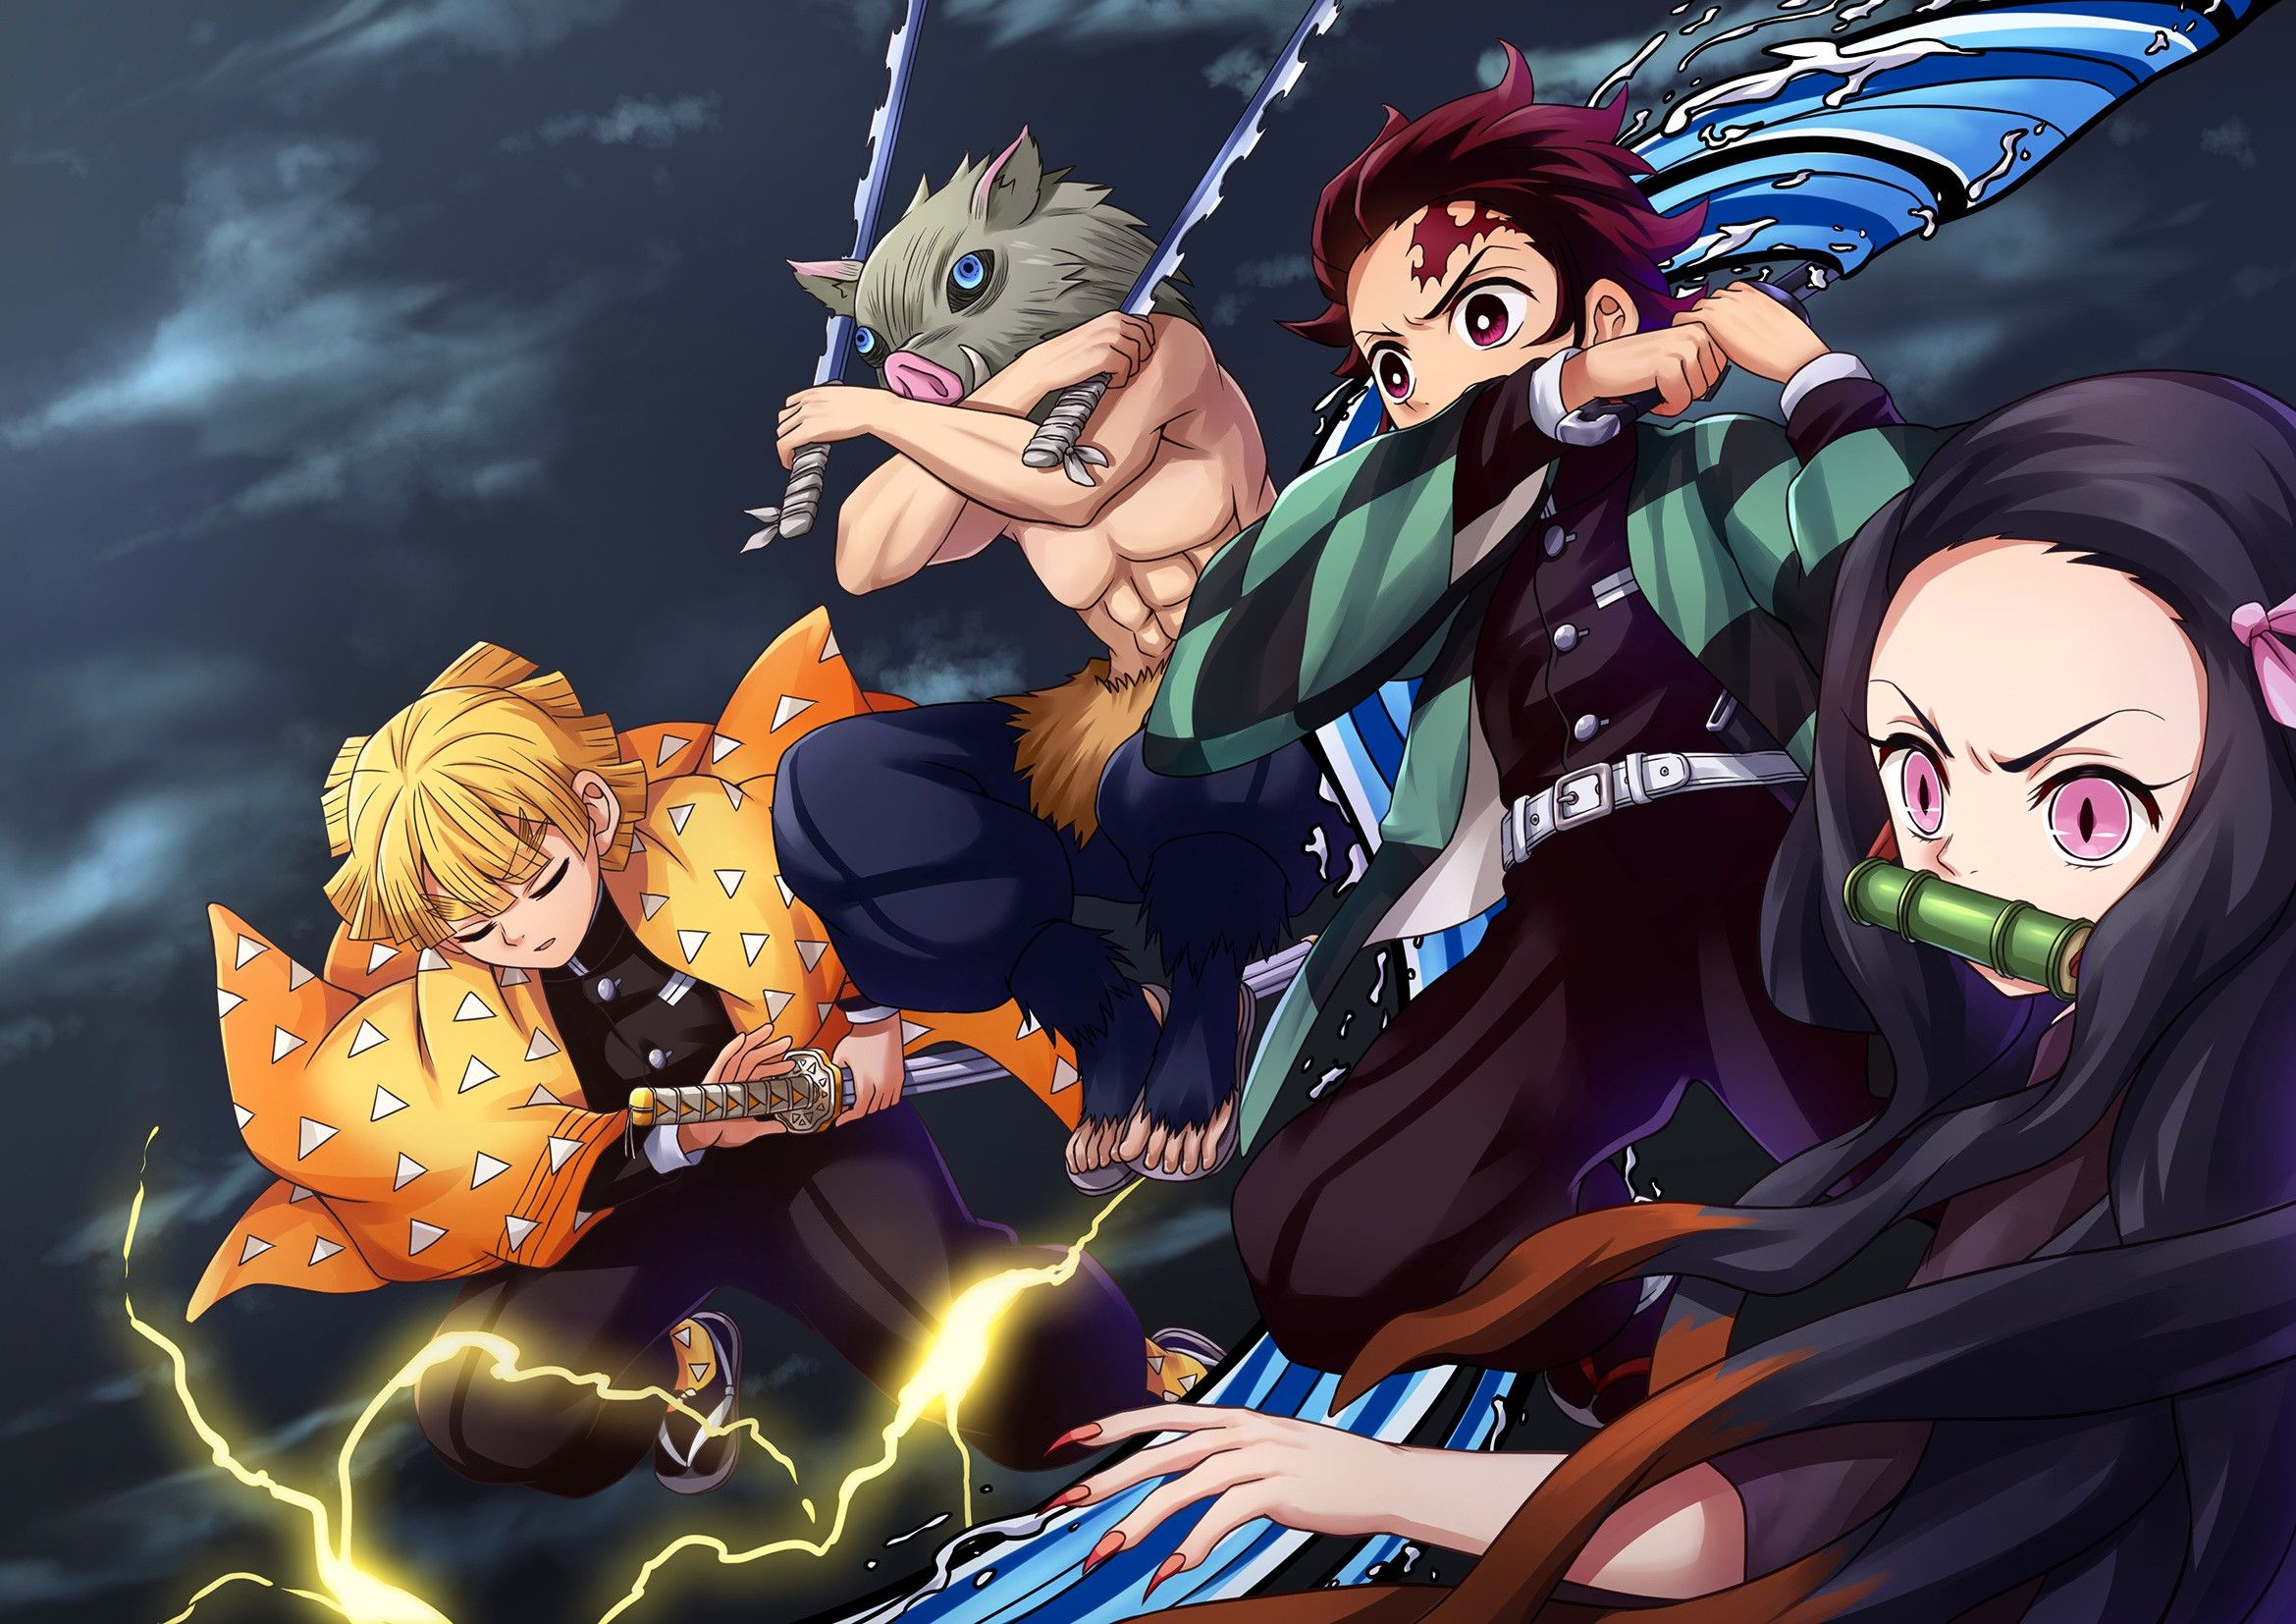 Fresh Demon Slayer Kimetsu No Yaiba Hd Wallpaper Characters Anime Demon Slayer Anime Anime